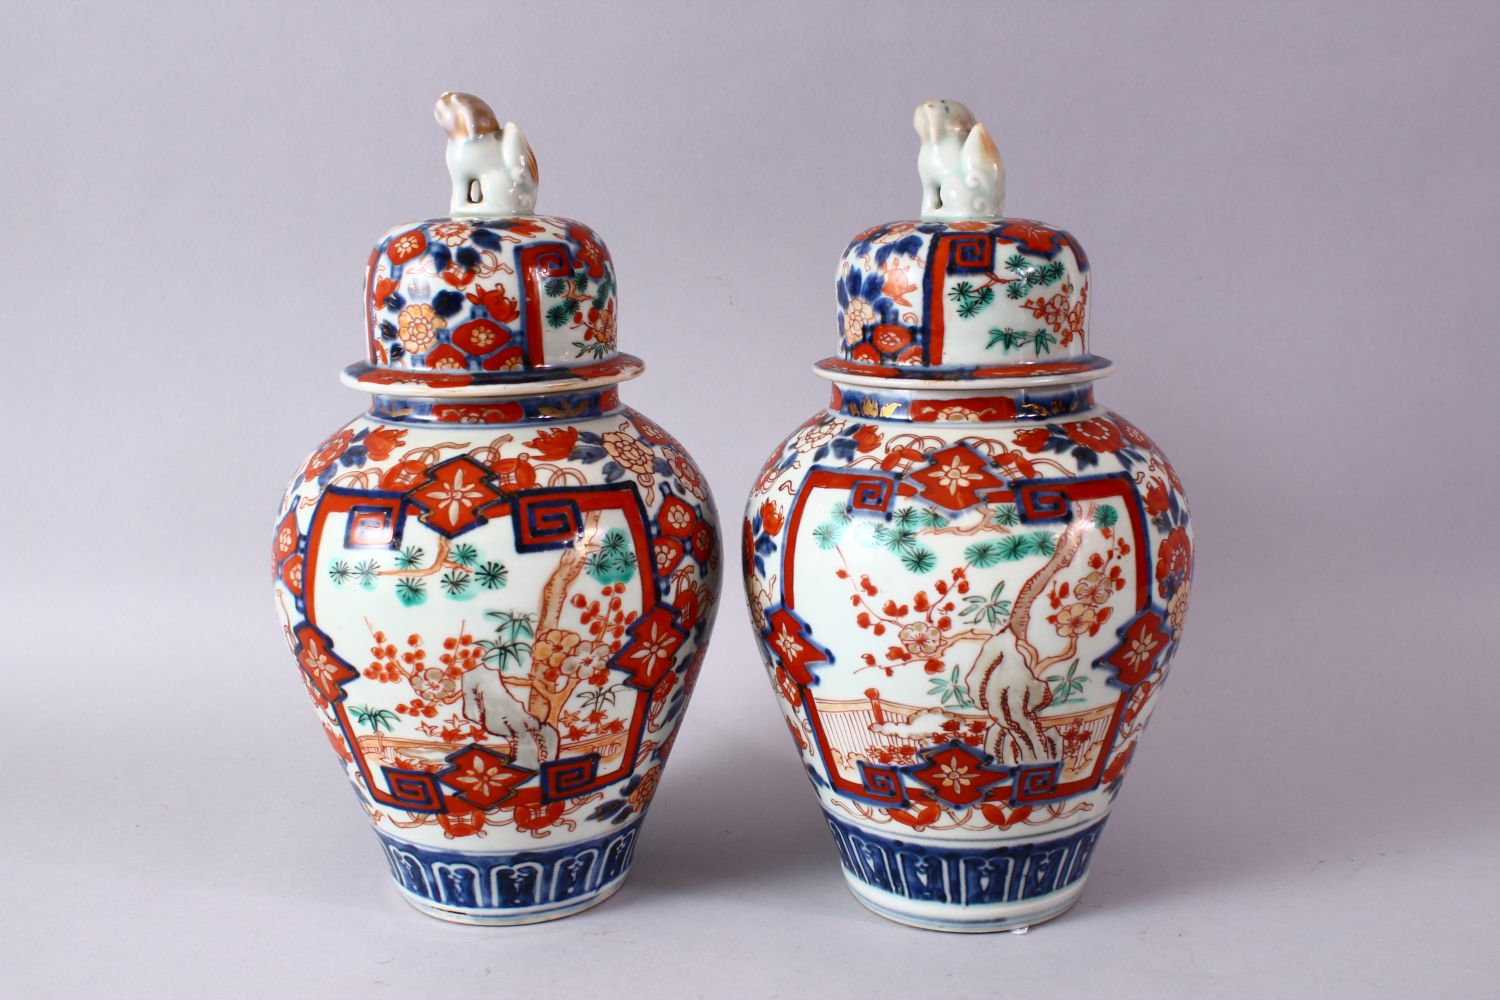 A PAIR OF MEIJI PERIOD IMARI VASES AND COVERS, with kylin finials, overall 30cm high. - Image 6 of 10